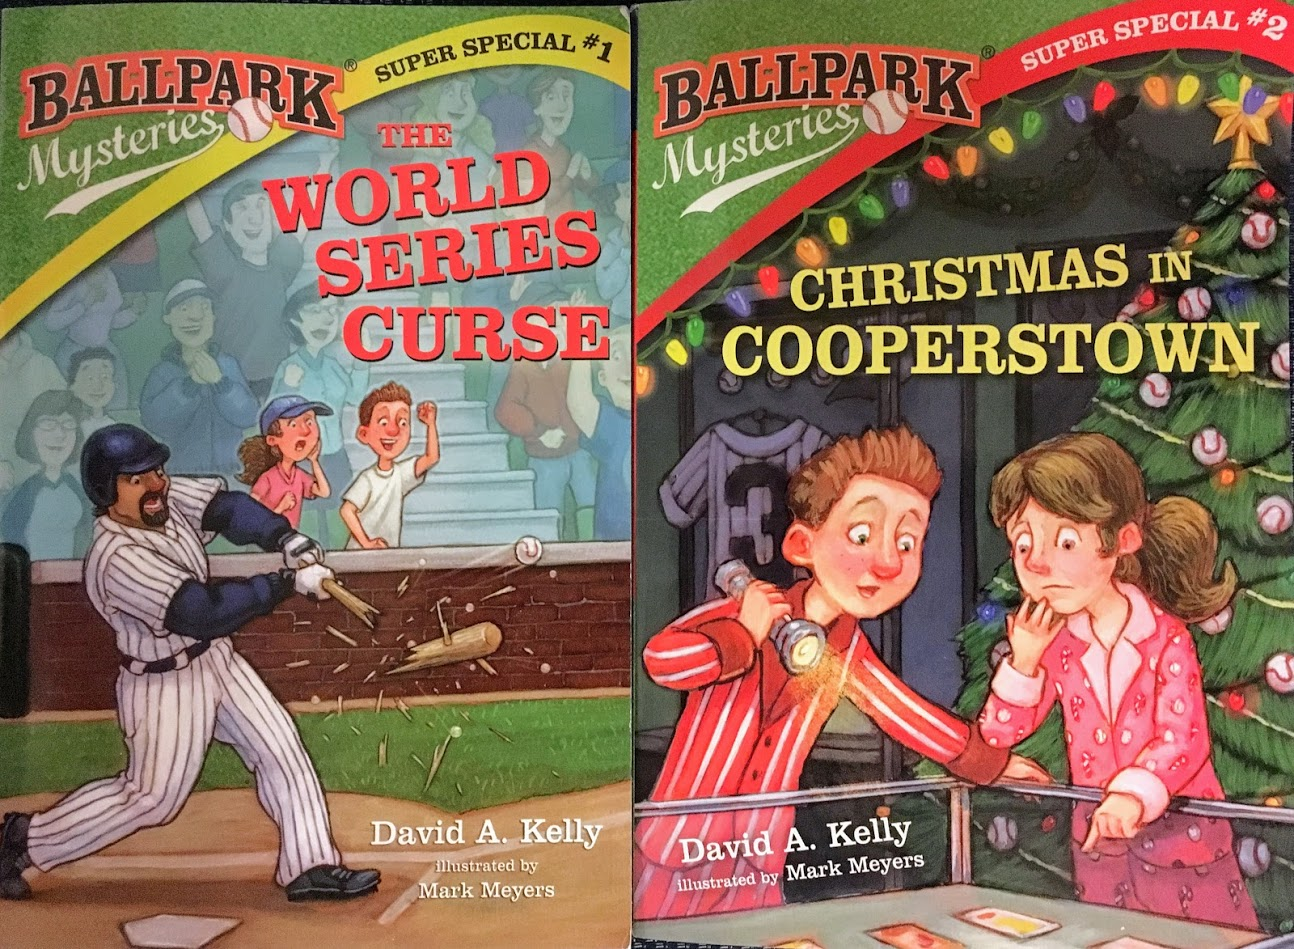 David A. Kelly's Ballpark Mysteries Super Special giveaway.jpg